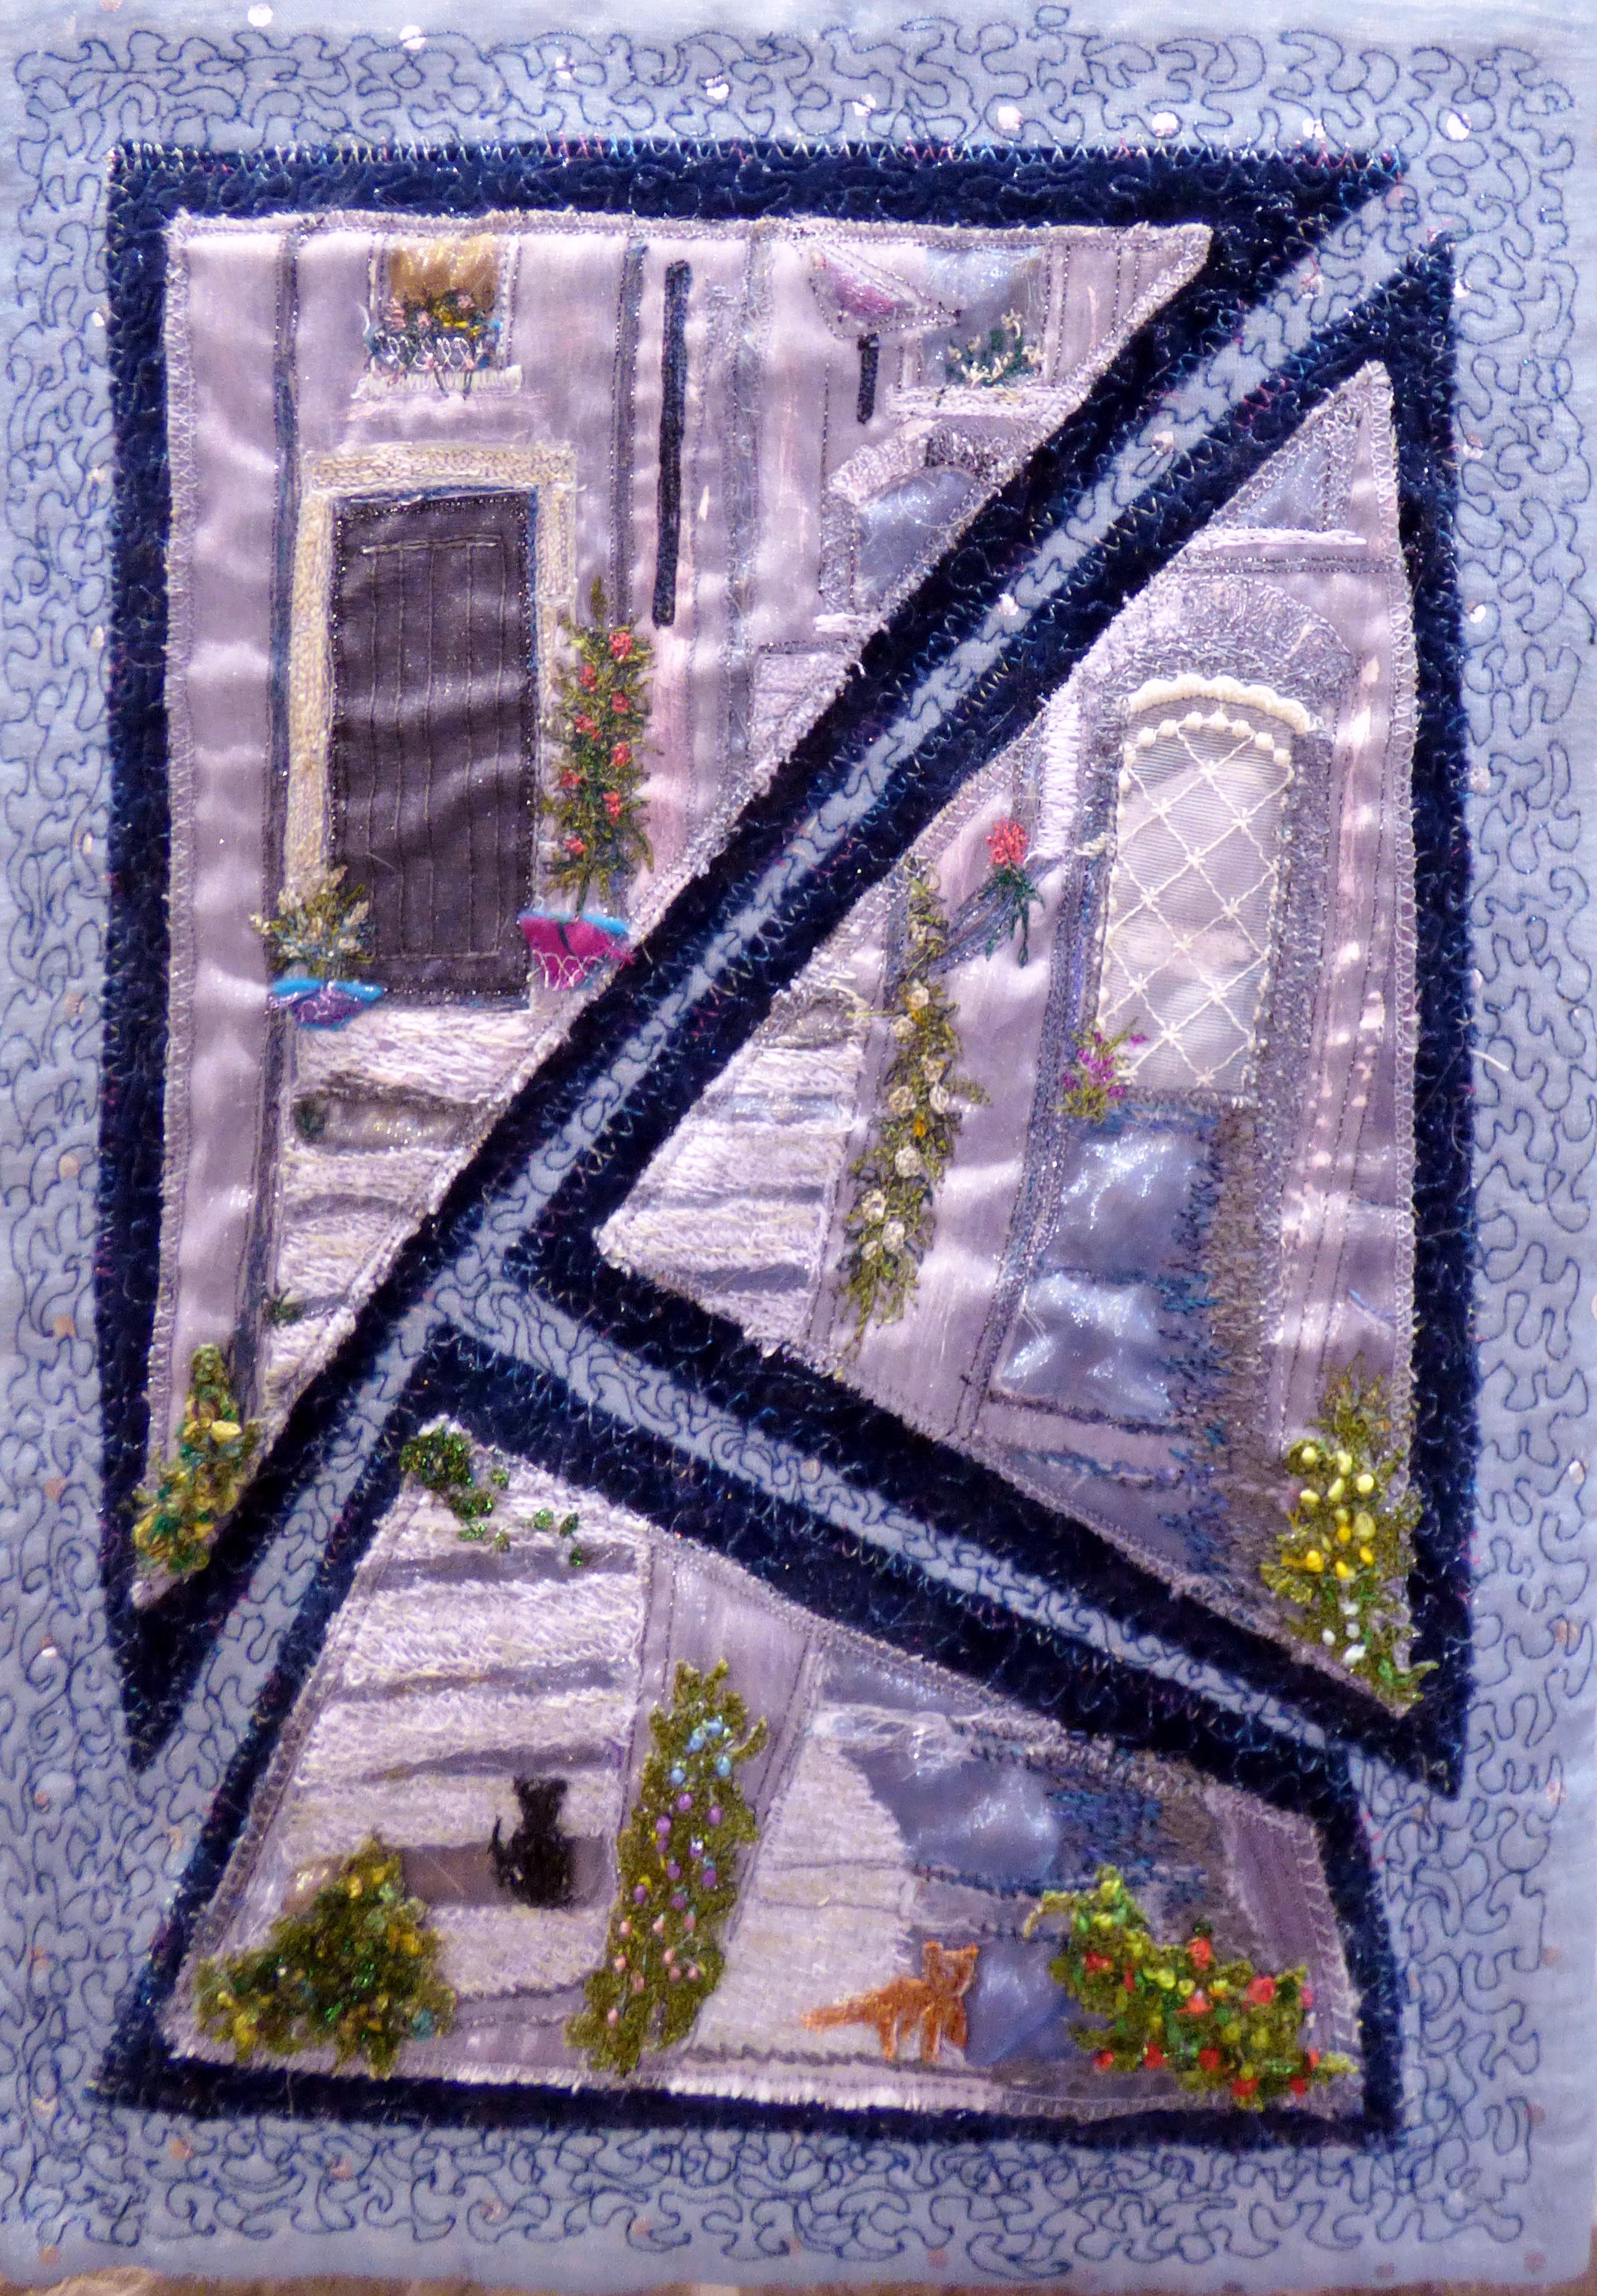 QUIET CORNERS by Audrey Tweed, N.Wales EG, free machine embroidery on layered organza